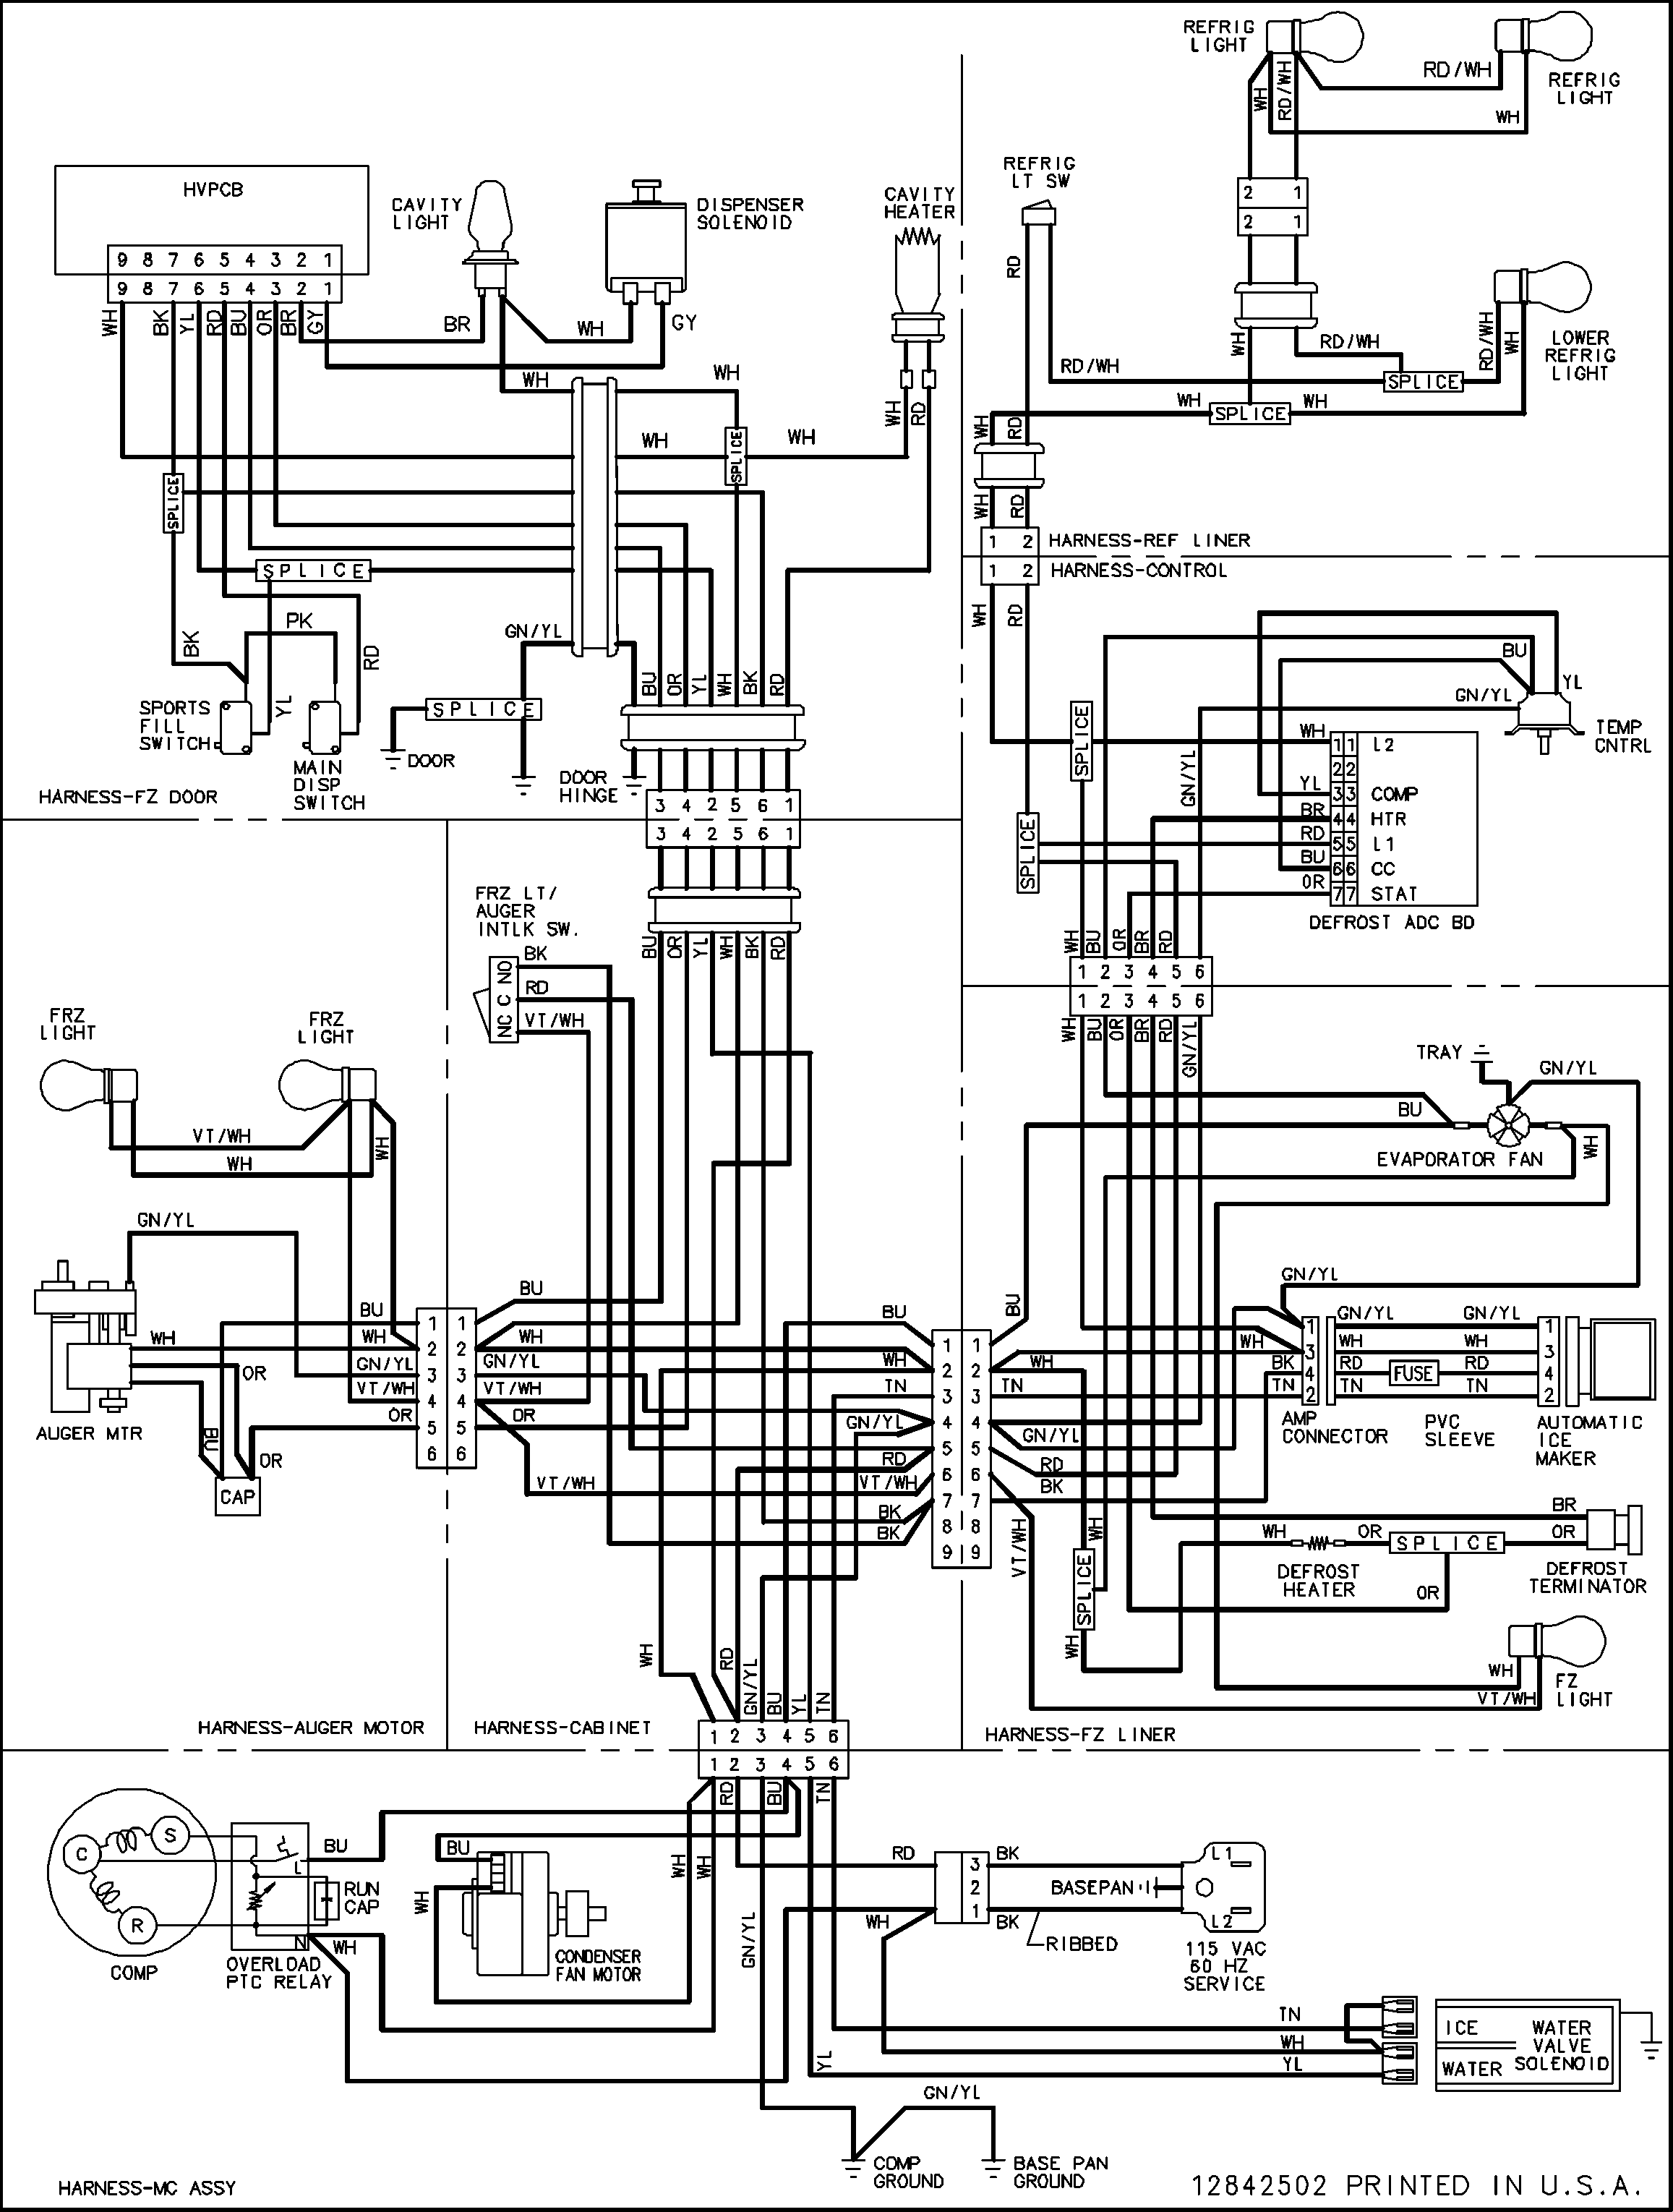 Maytag Refrigerator Ice Maker Wiring Diagram